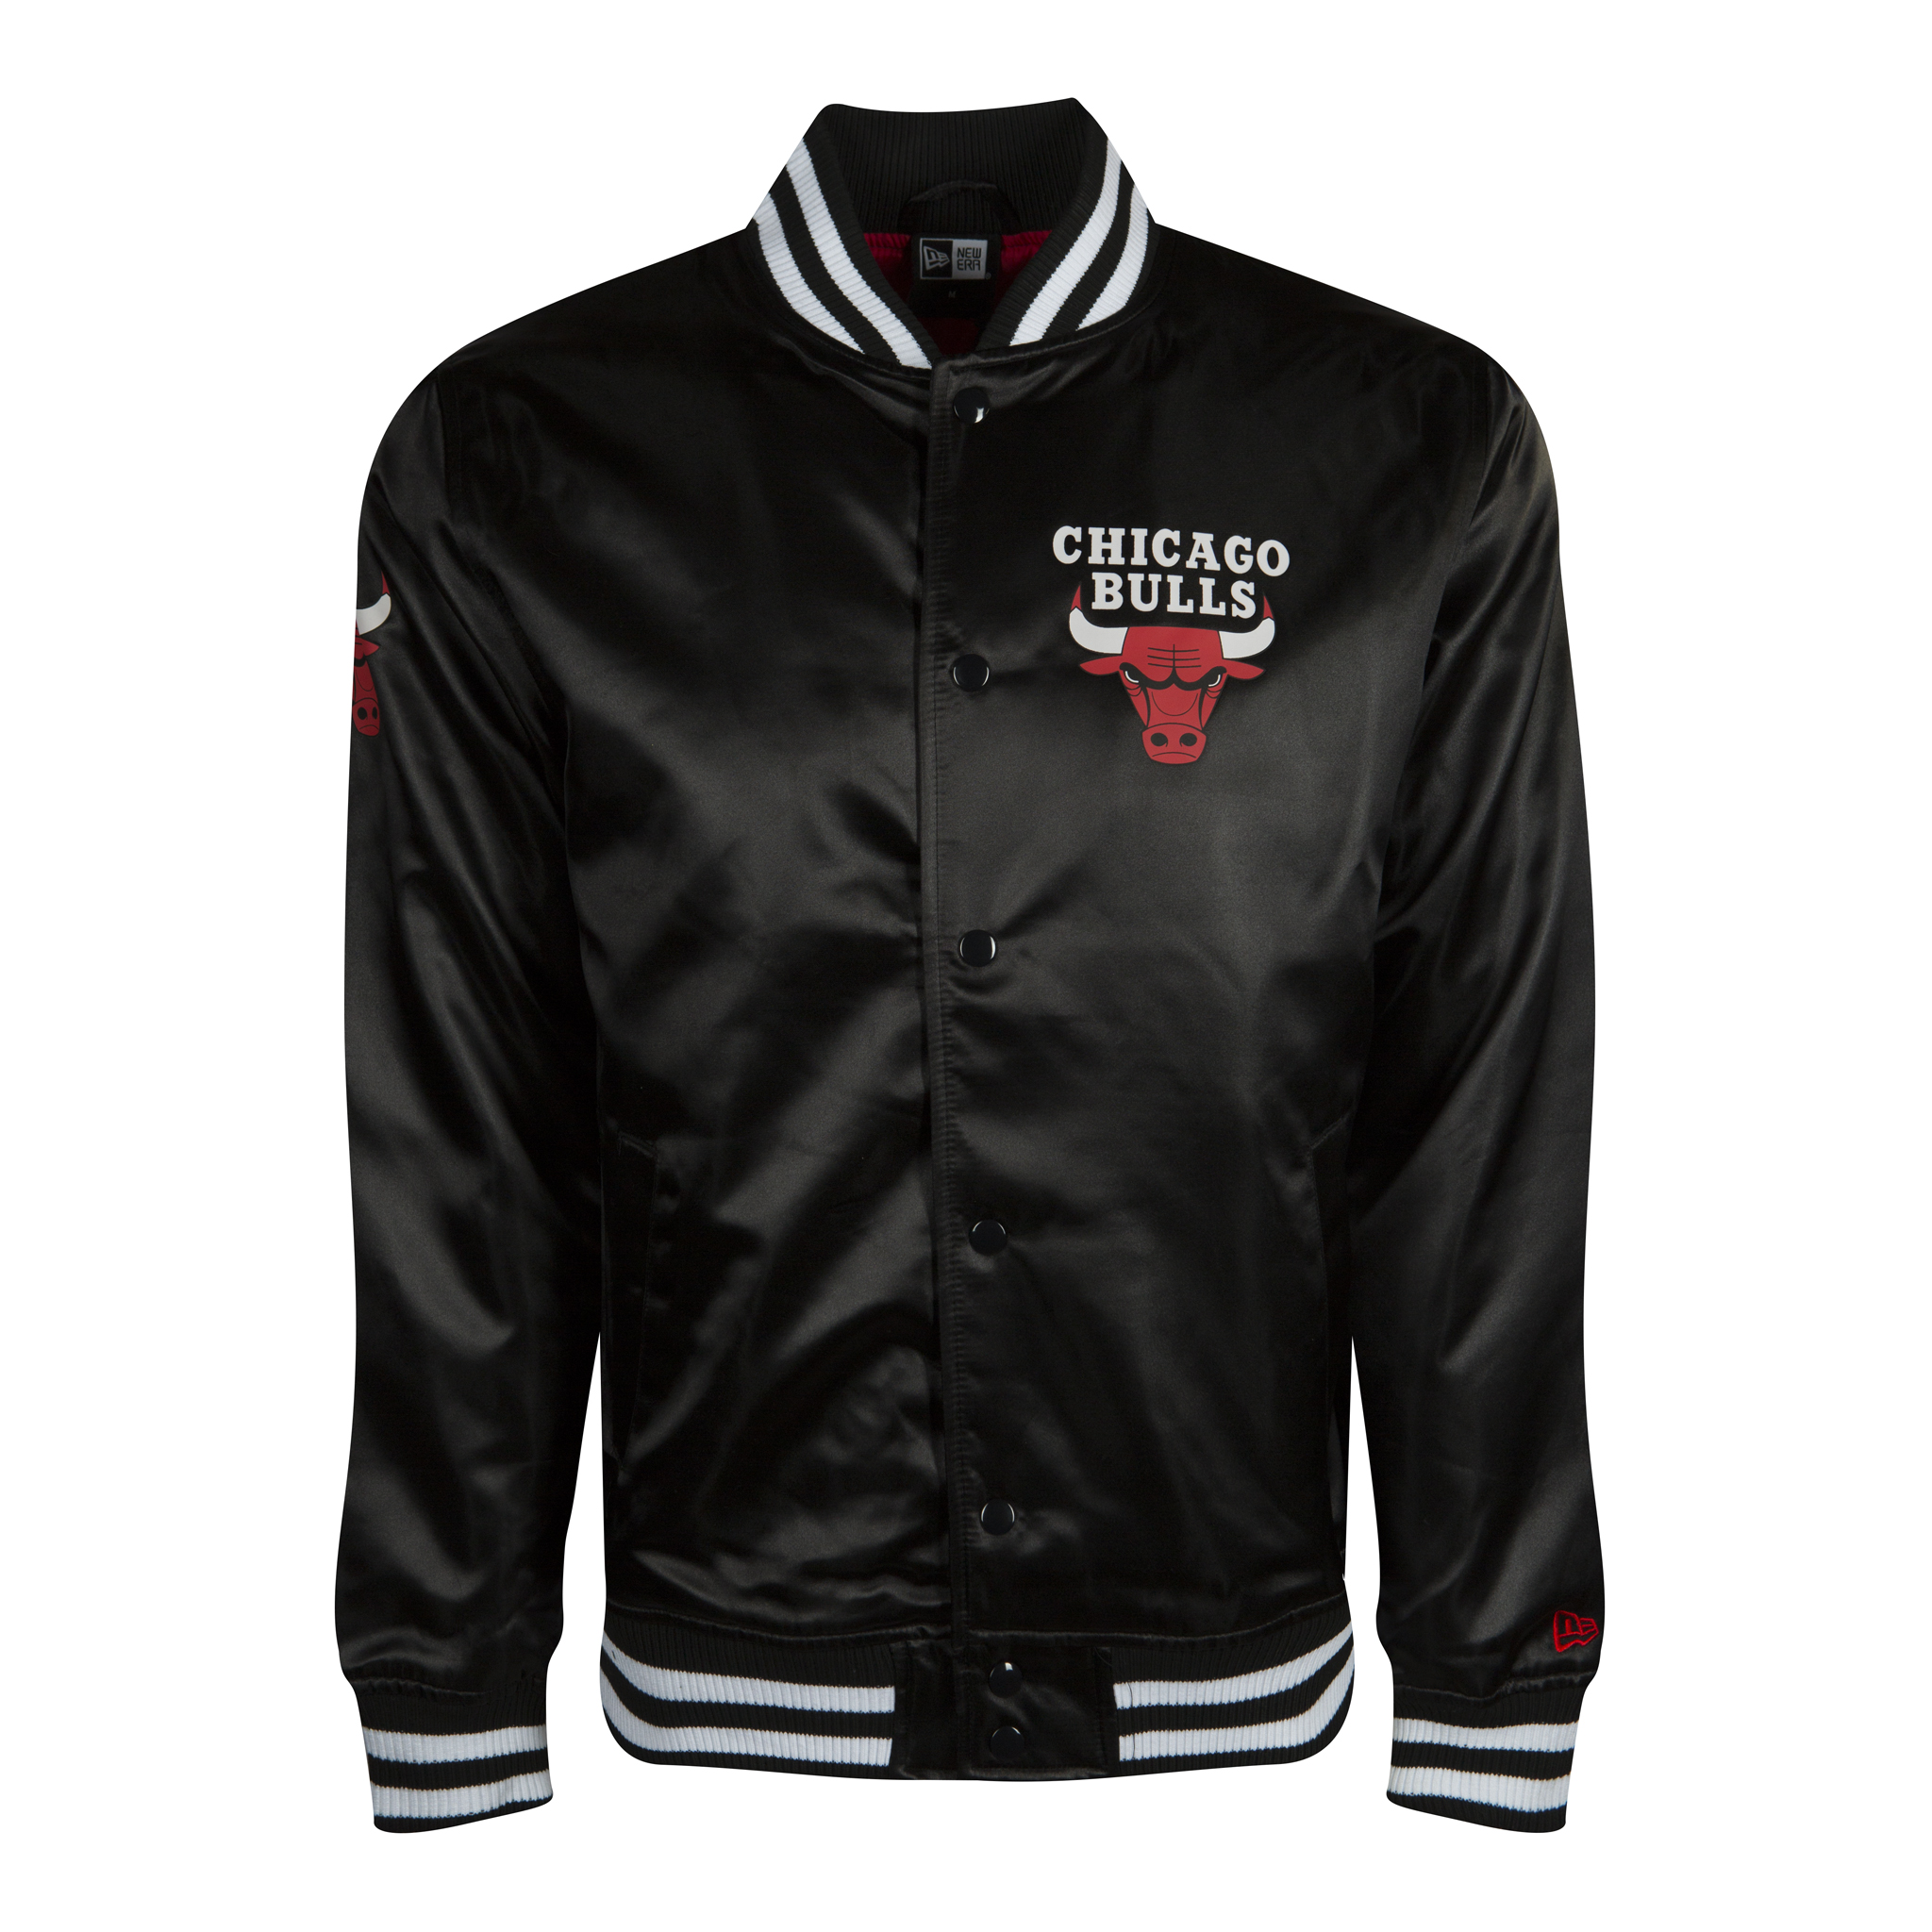 CHICAGO BULLS SATEEN VARSITY JACKET